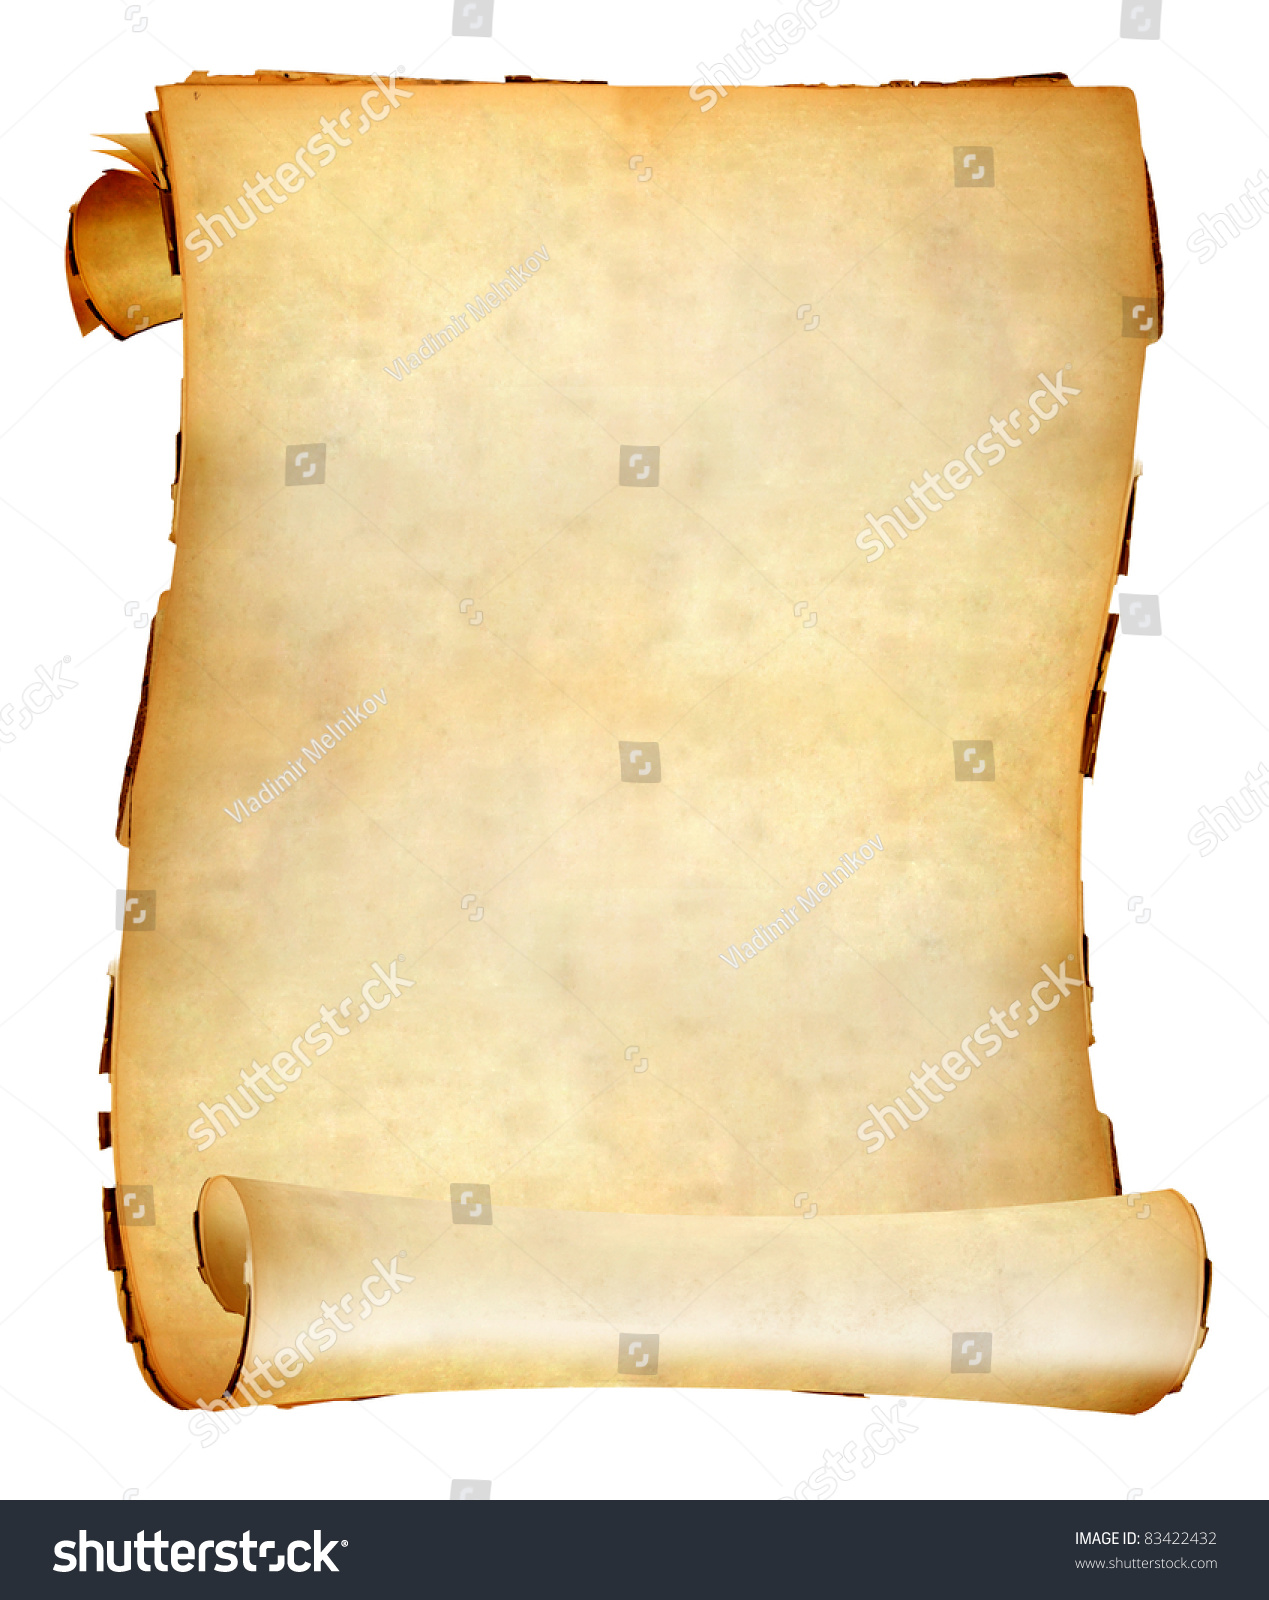 vintage paper scroll soft shades on stock photo 83422432